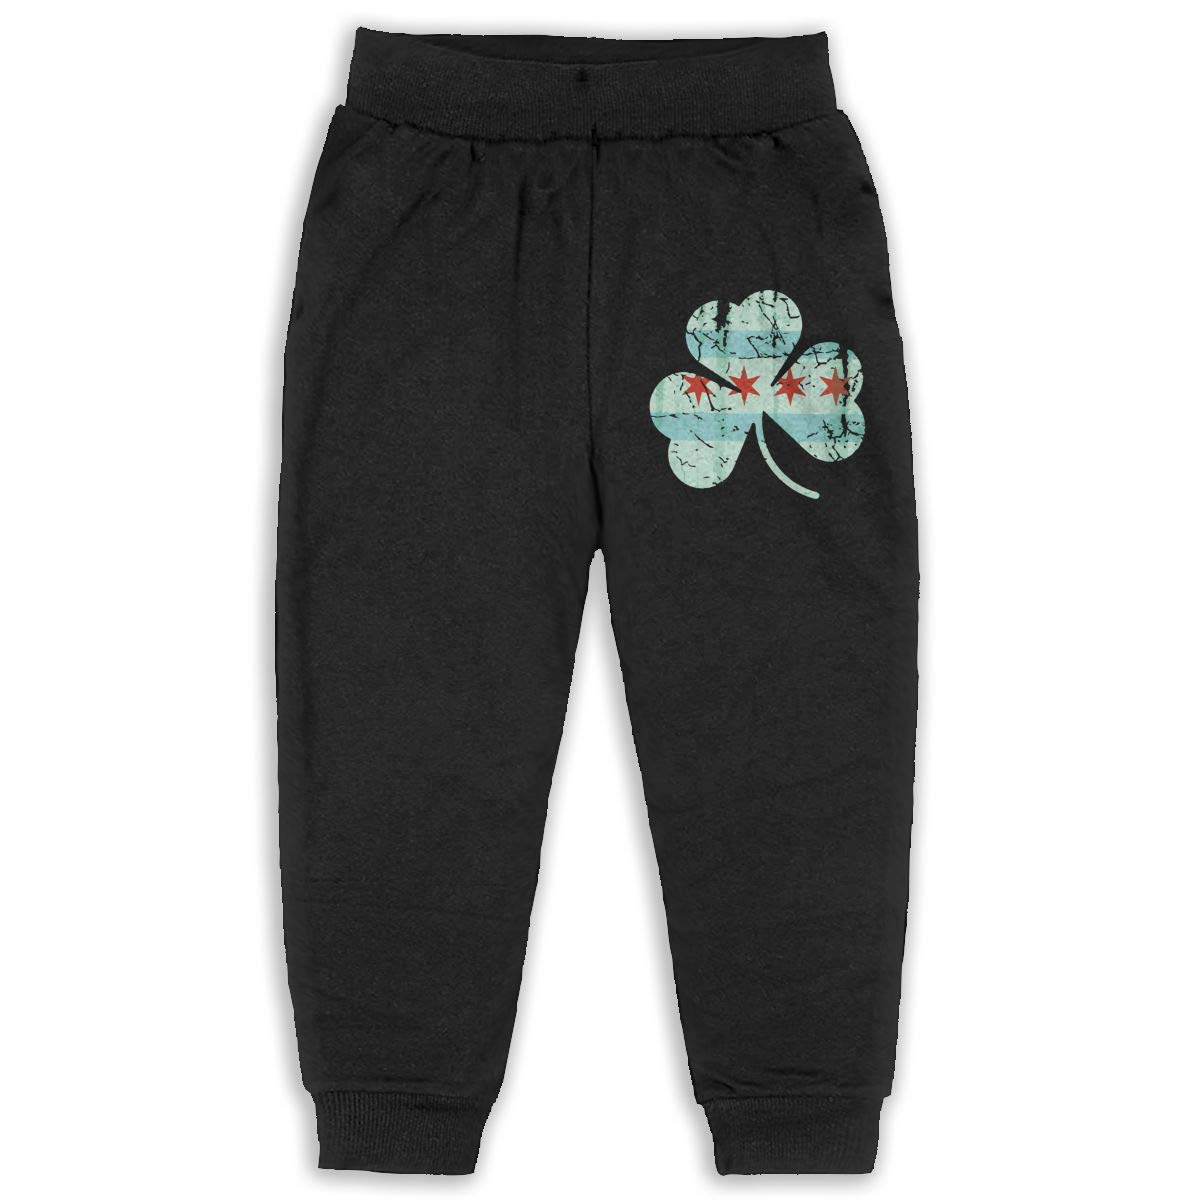 ELCW37K Kids /& Toddler Pants Soft Cozy Baby Sweatpants Irish Chicago Flag Shamrock Fleece Pants Athletic Pants